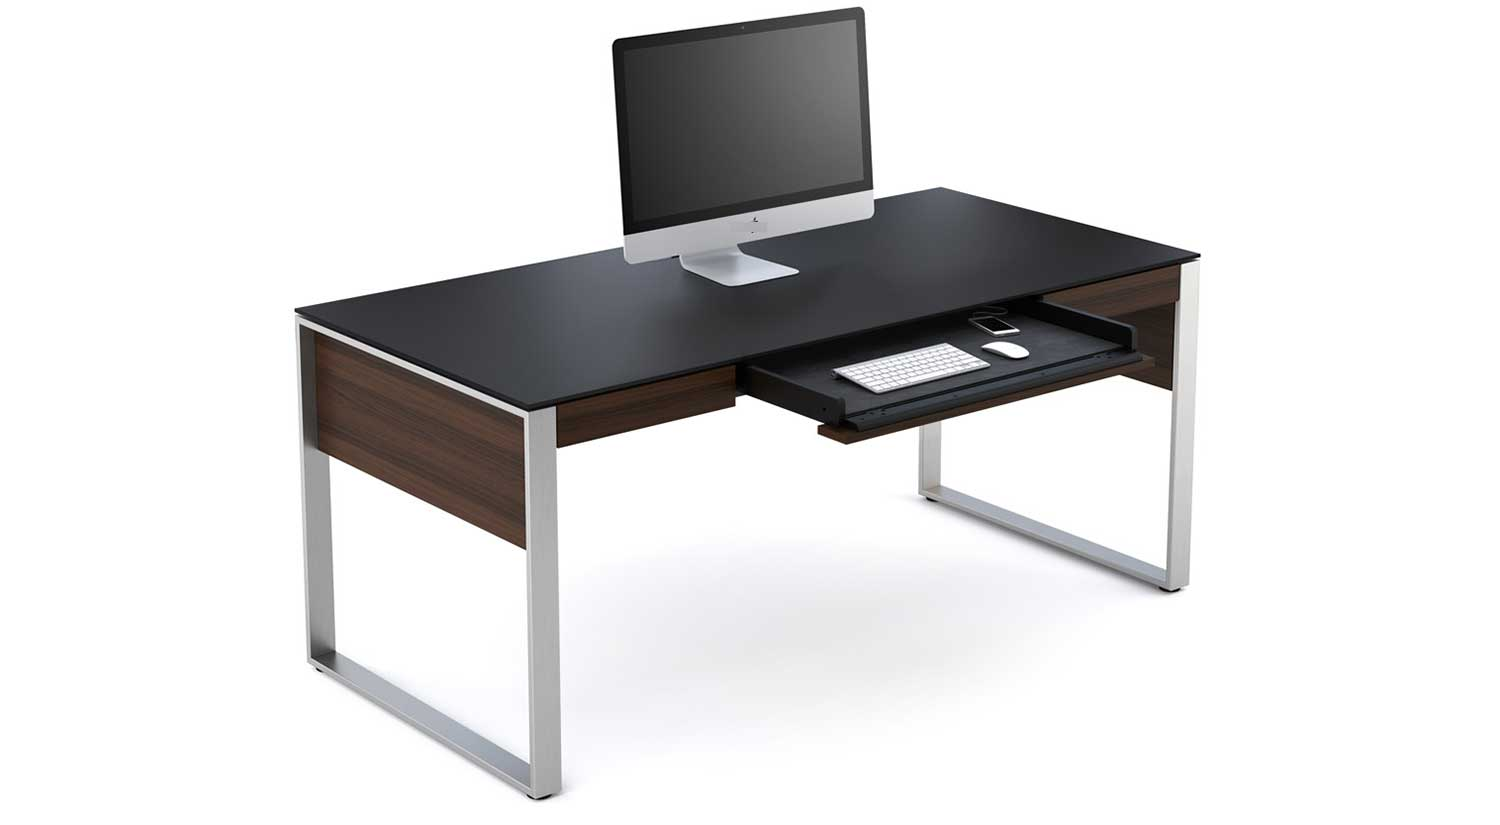 Circle Furniture Sequel Executive Desk Wire Managment